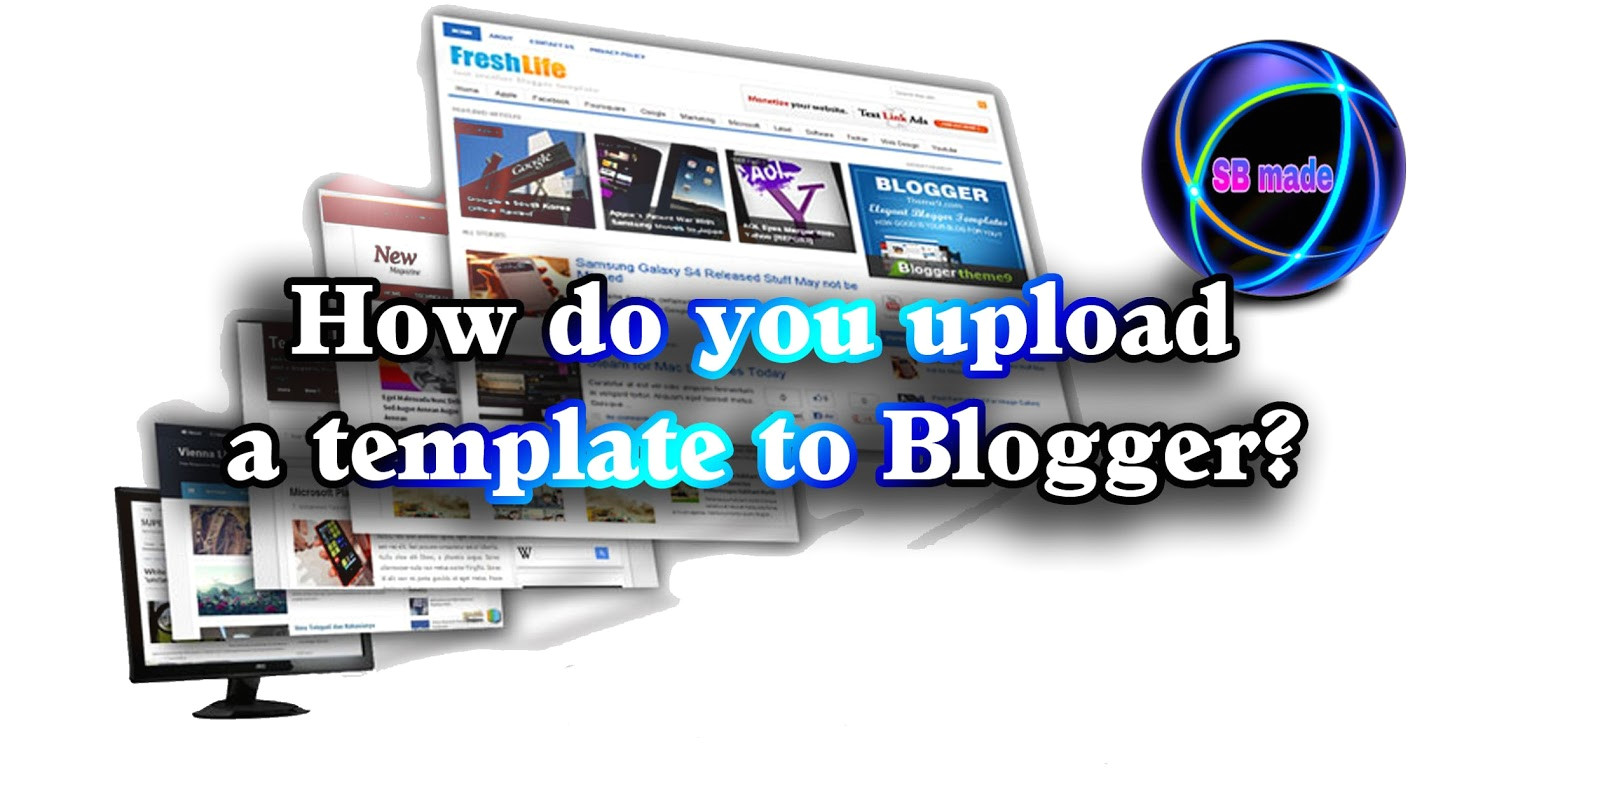 how do you upload template to blogger